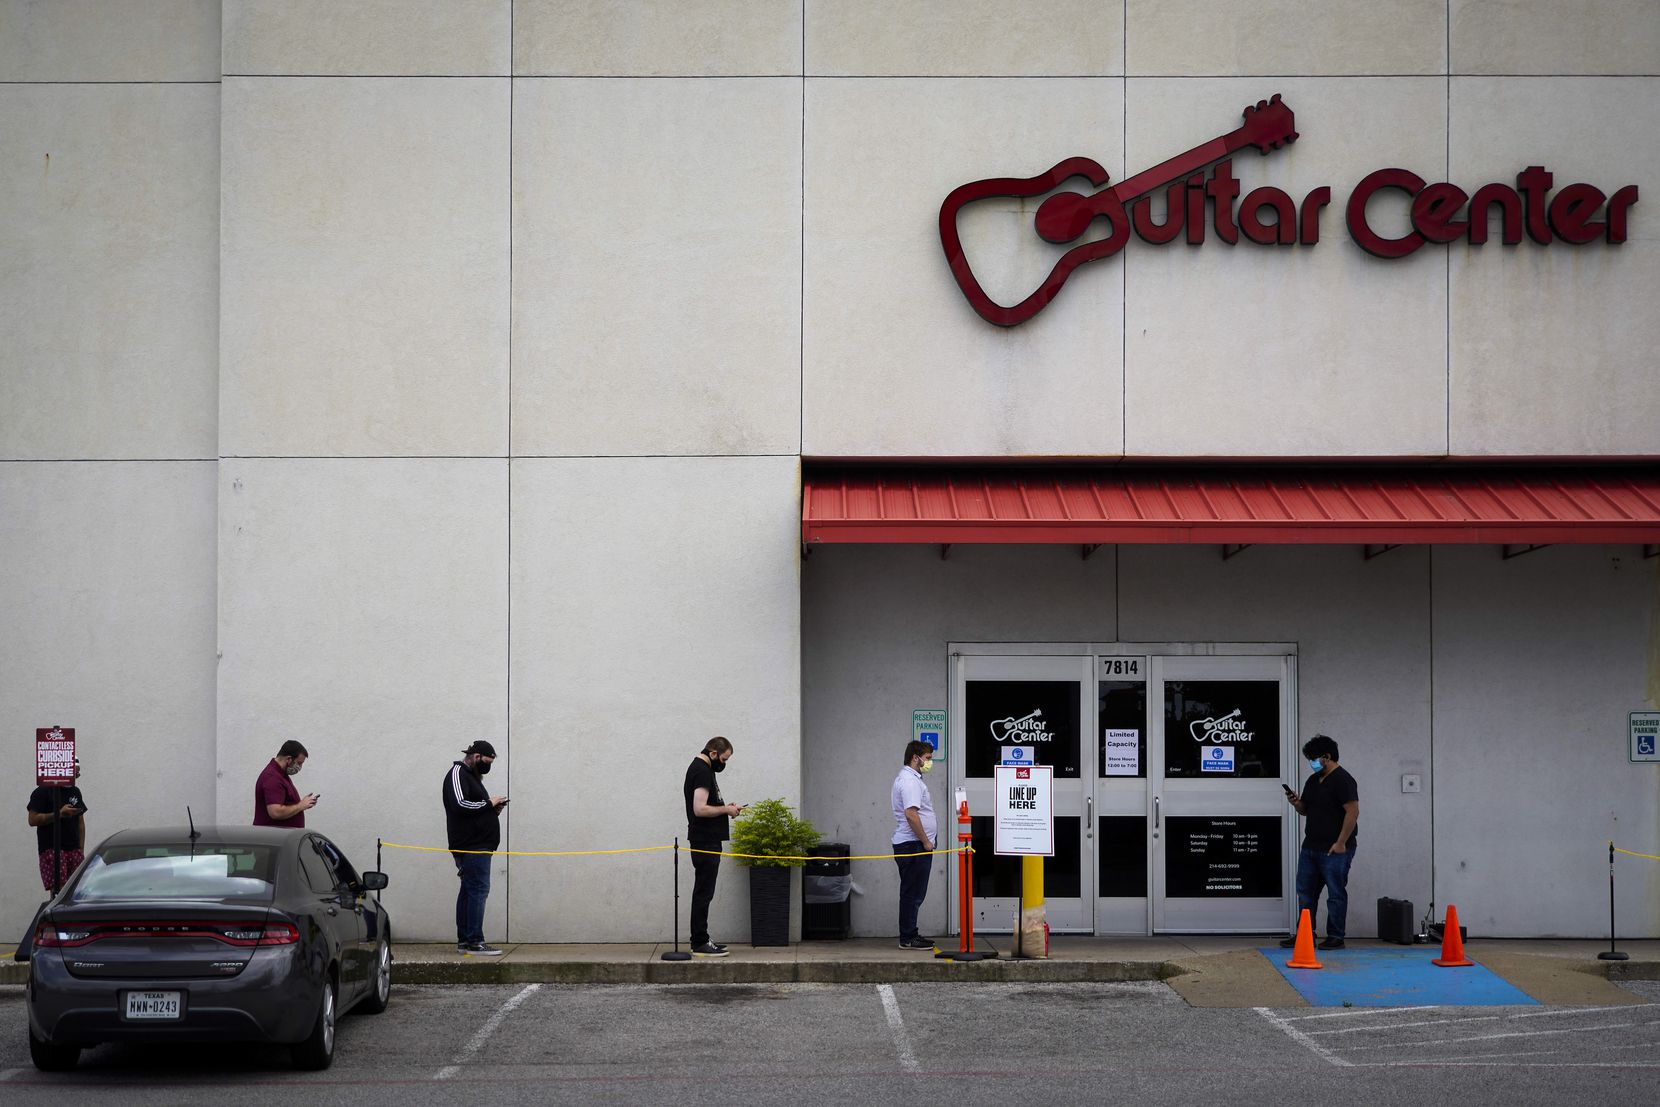 Customers kept social distancing as they waited to enter the Guitar Center store at 7814 N. Central Expressway on May 8, 2020, in Dallas. With retailers able to open at 25% occupancy, customers are only allowed to enter after another exits.